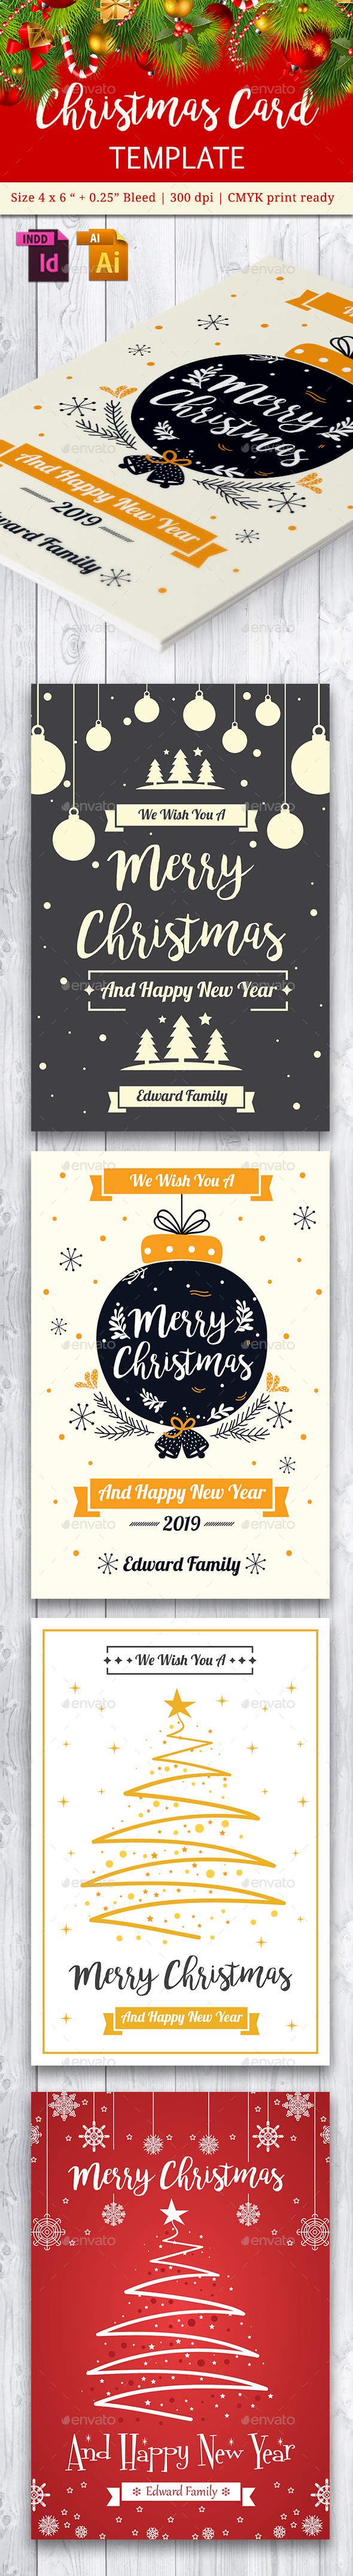 Christmas Card Vol. 4 - Cards & Invites Print Templates